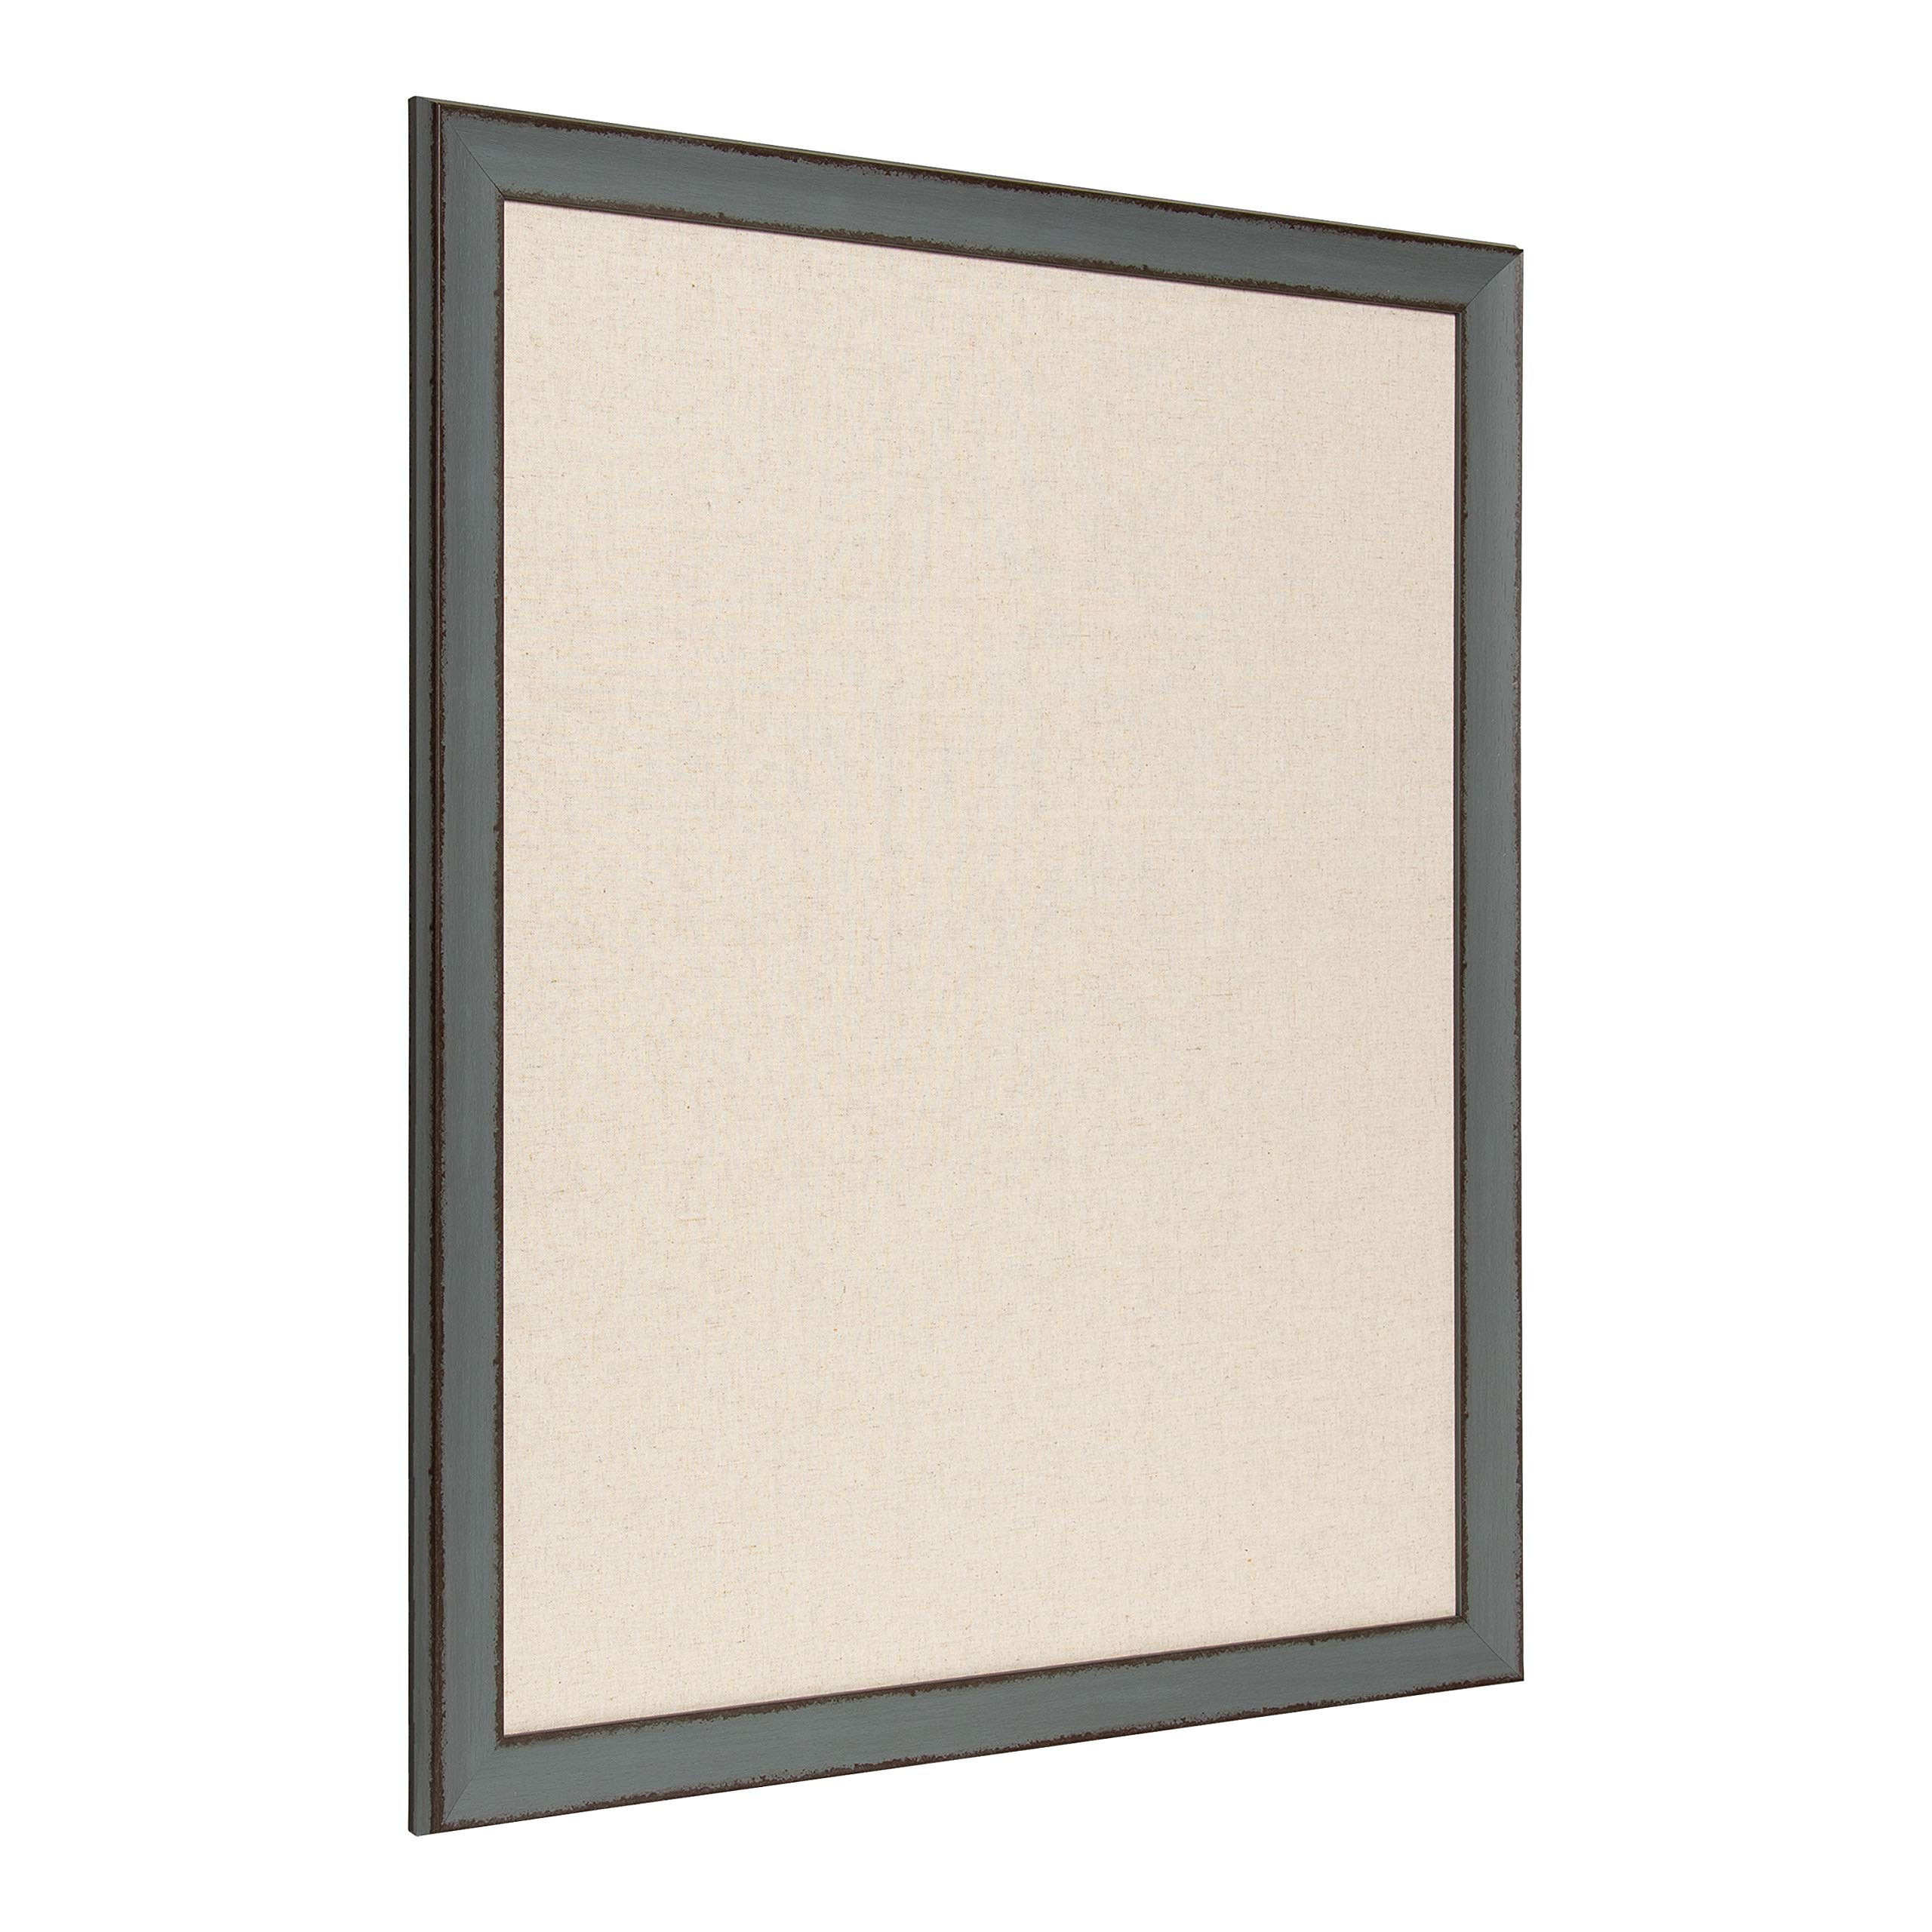 Kate and Laurel Kenwick Framed Linen Fabric Pinboard, 27x33, Gray Green by Kate and Laurel (Image #2)